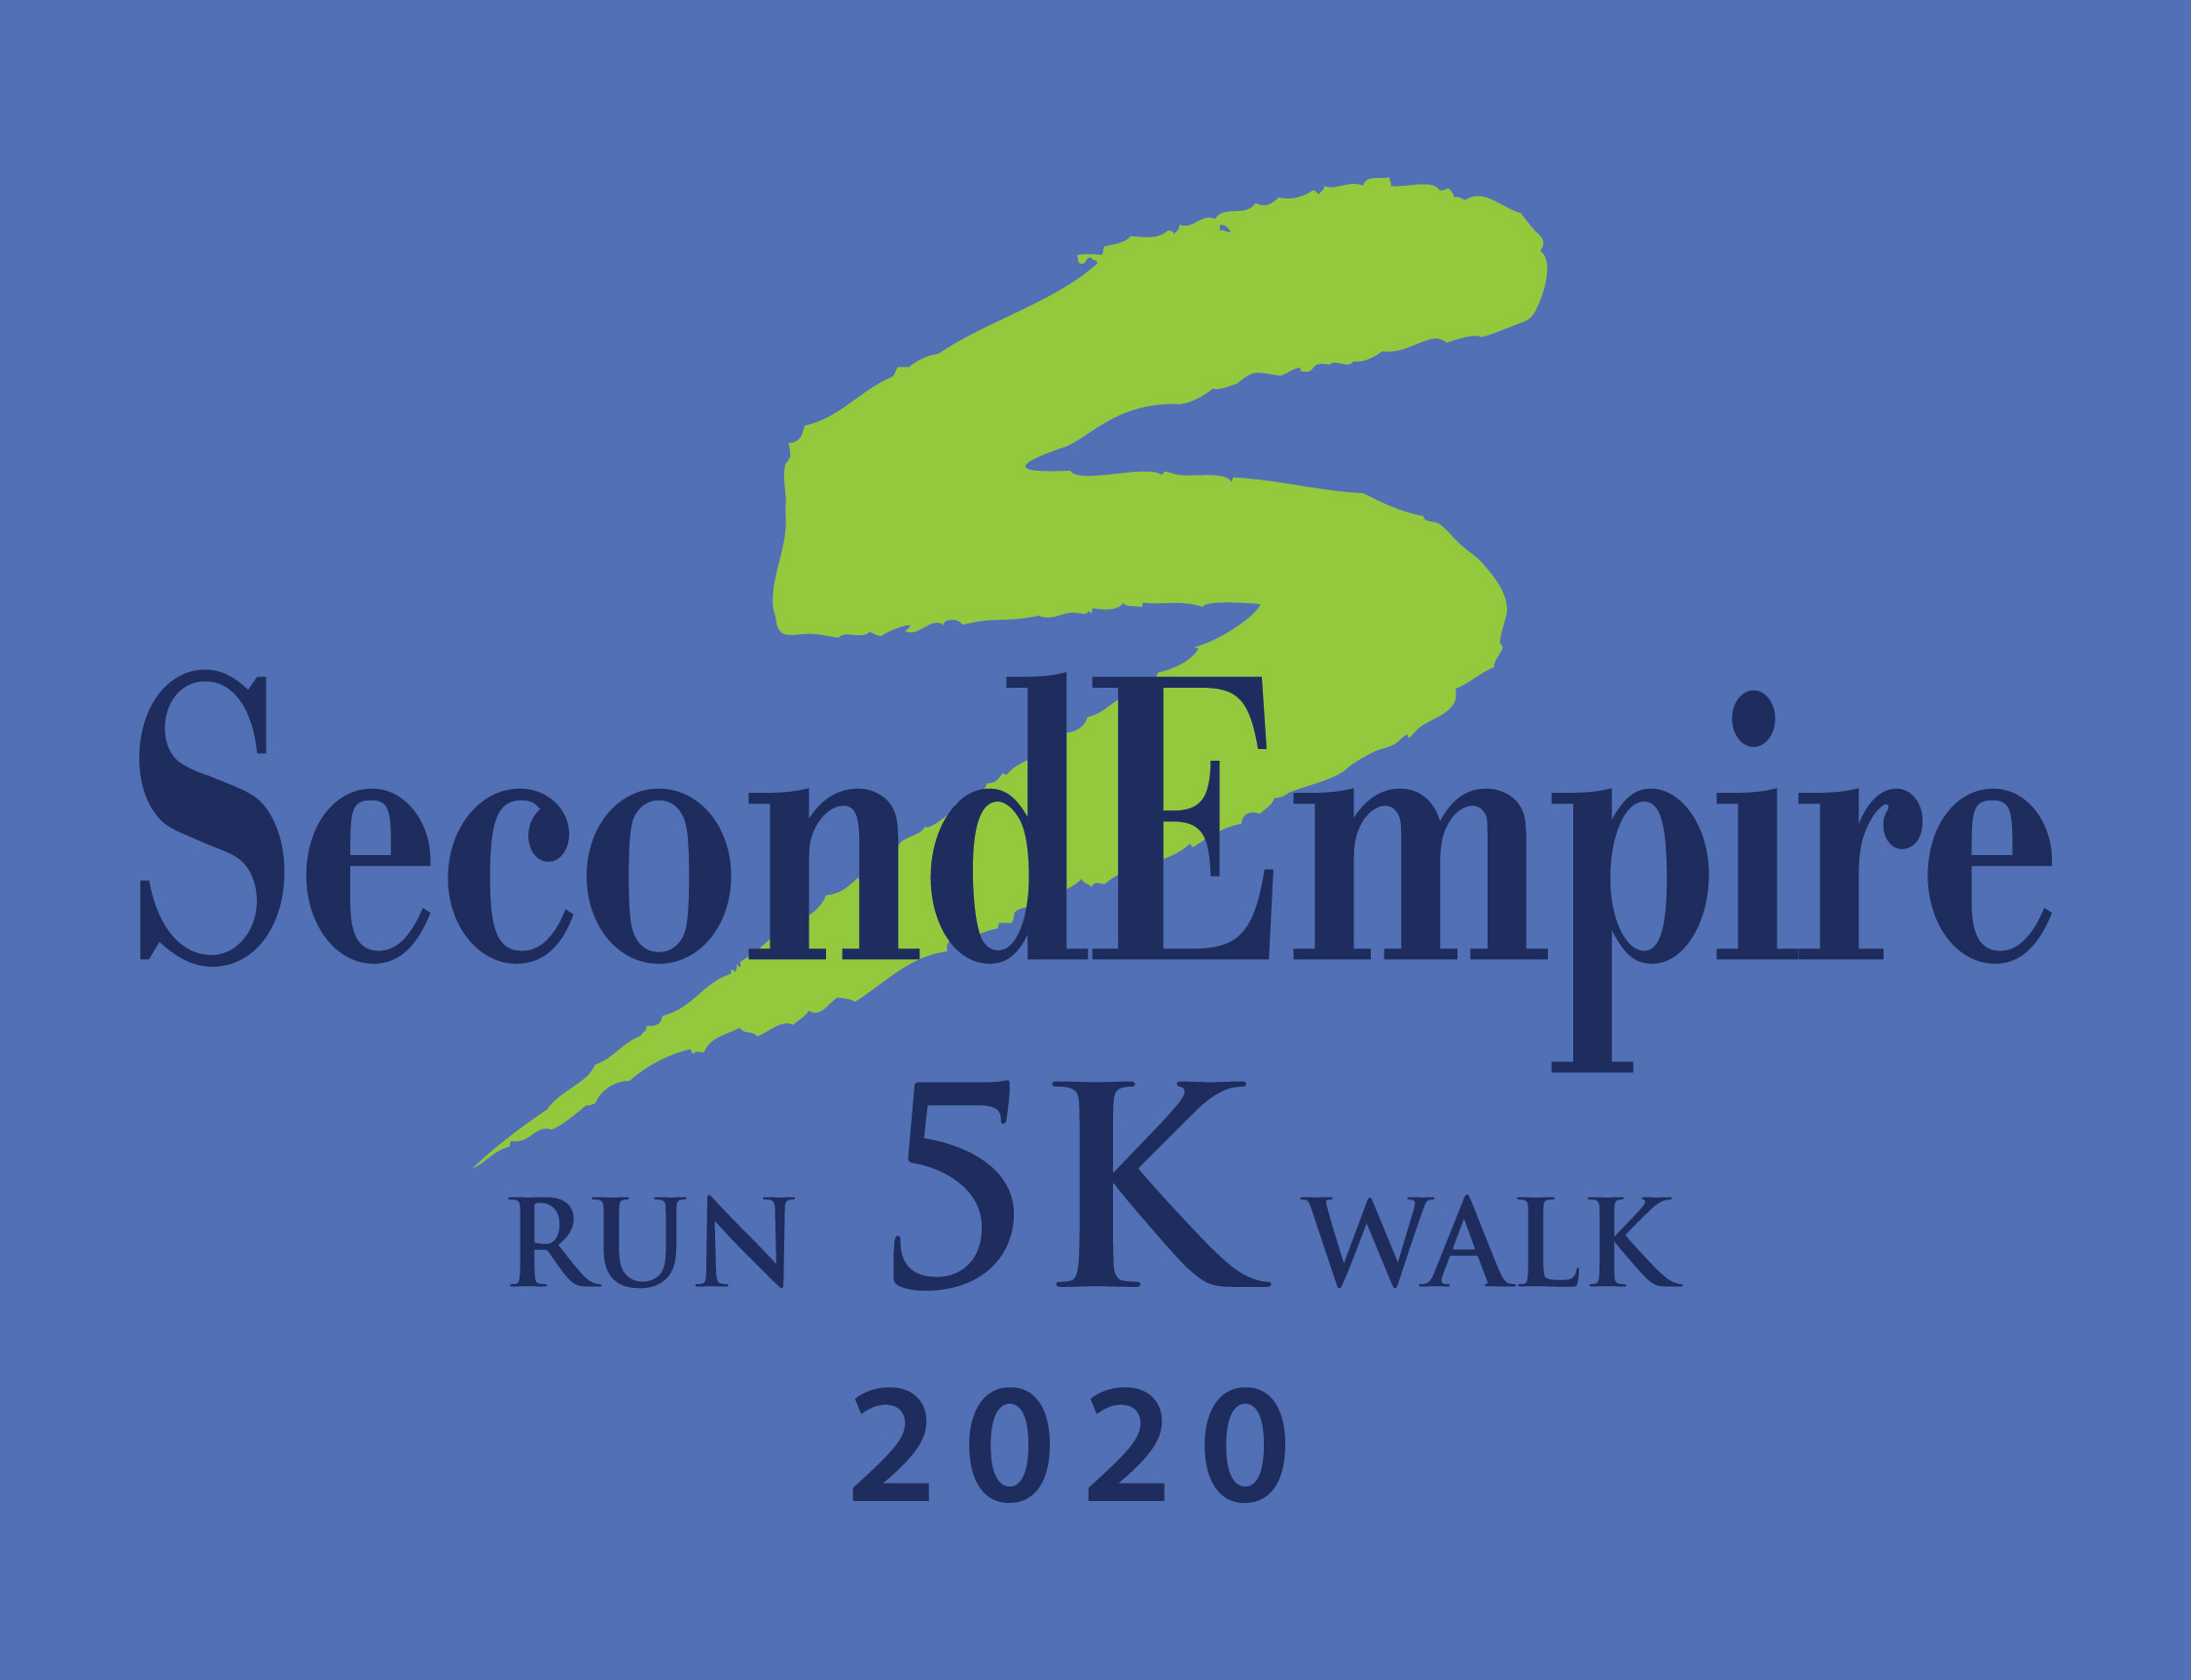 Second Empire 5k Classic 2020